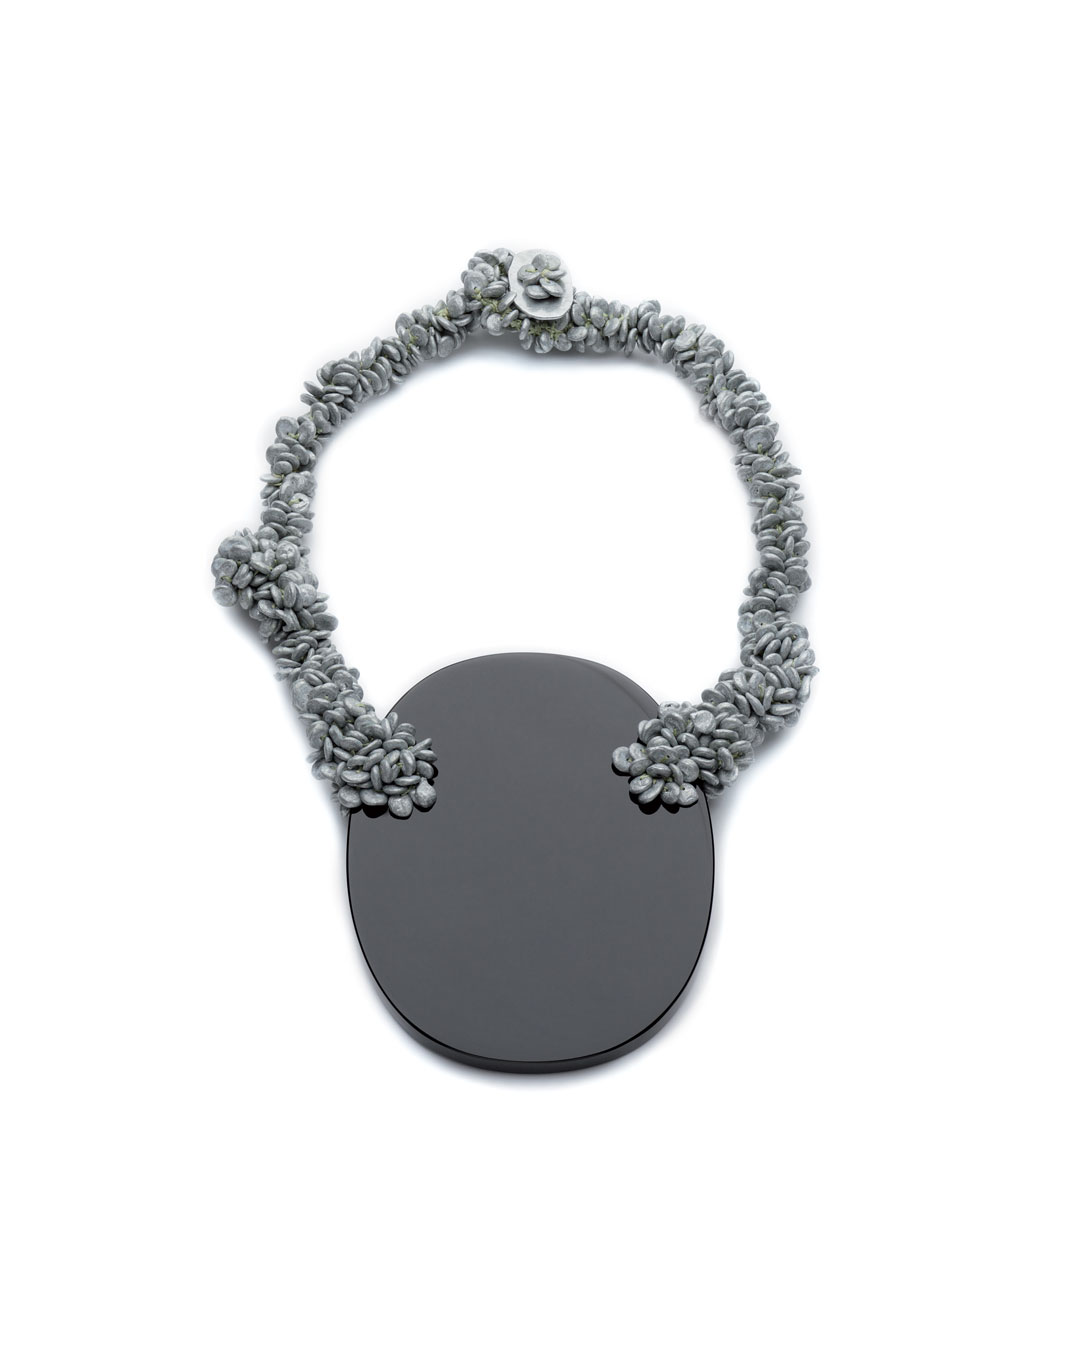 Iris Bodemer, untitled, 2008, necklace; obsidian, zinc, fishing wire, 260 x 170 x 25 mm, €3500